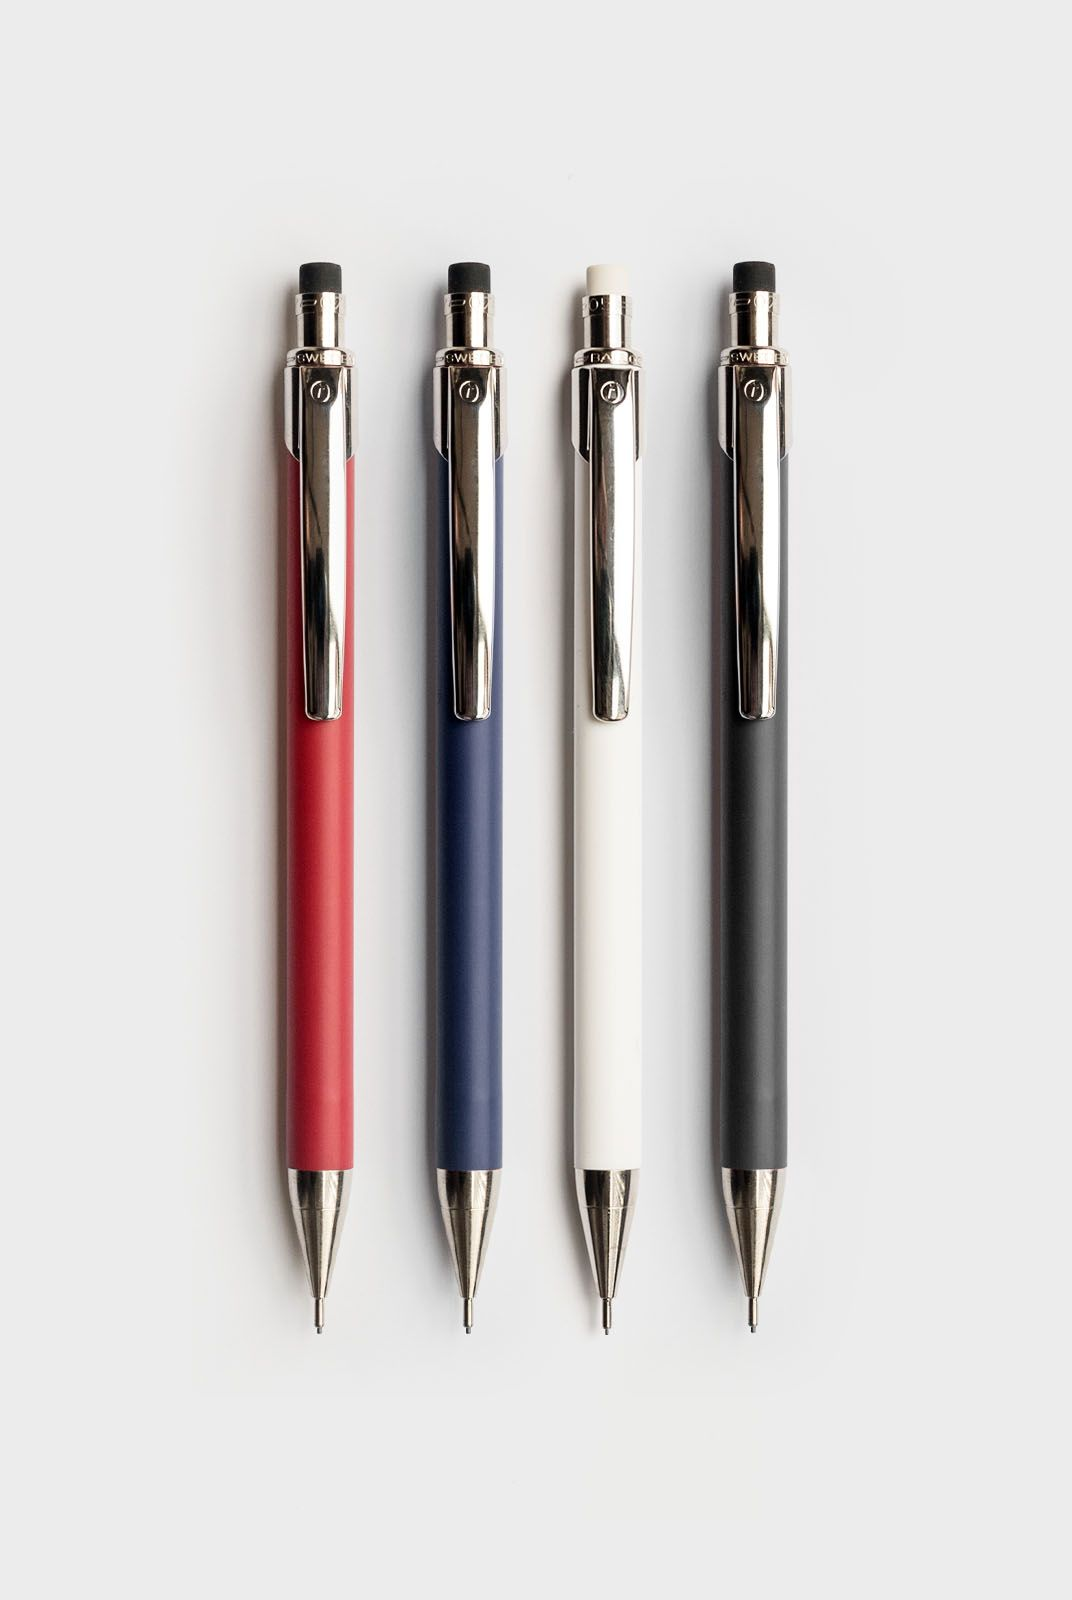 0.5mm Metal Mechanical Automatic Pencil For School Writing Drawing Supplies Fad